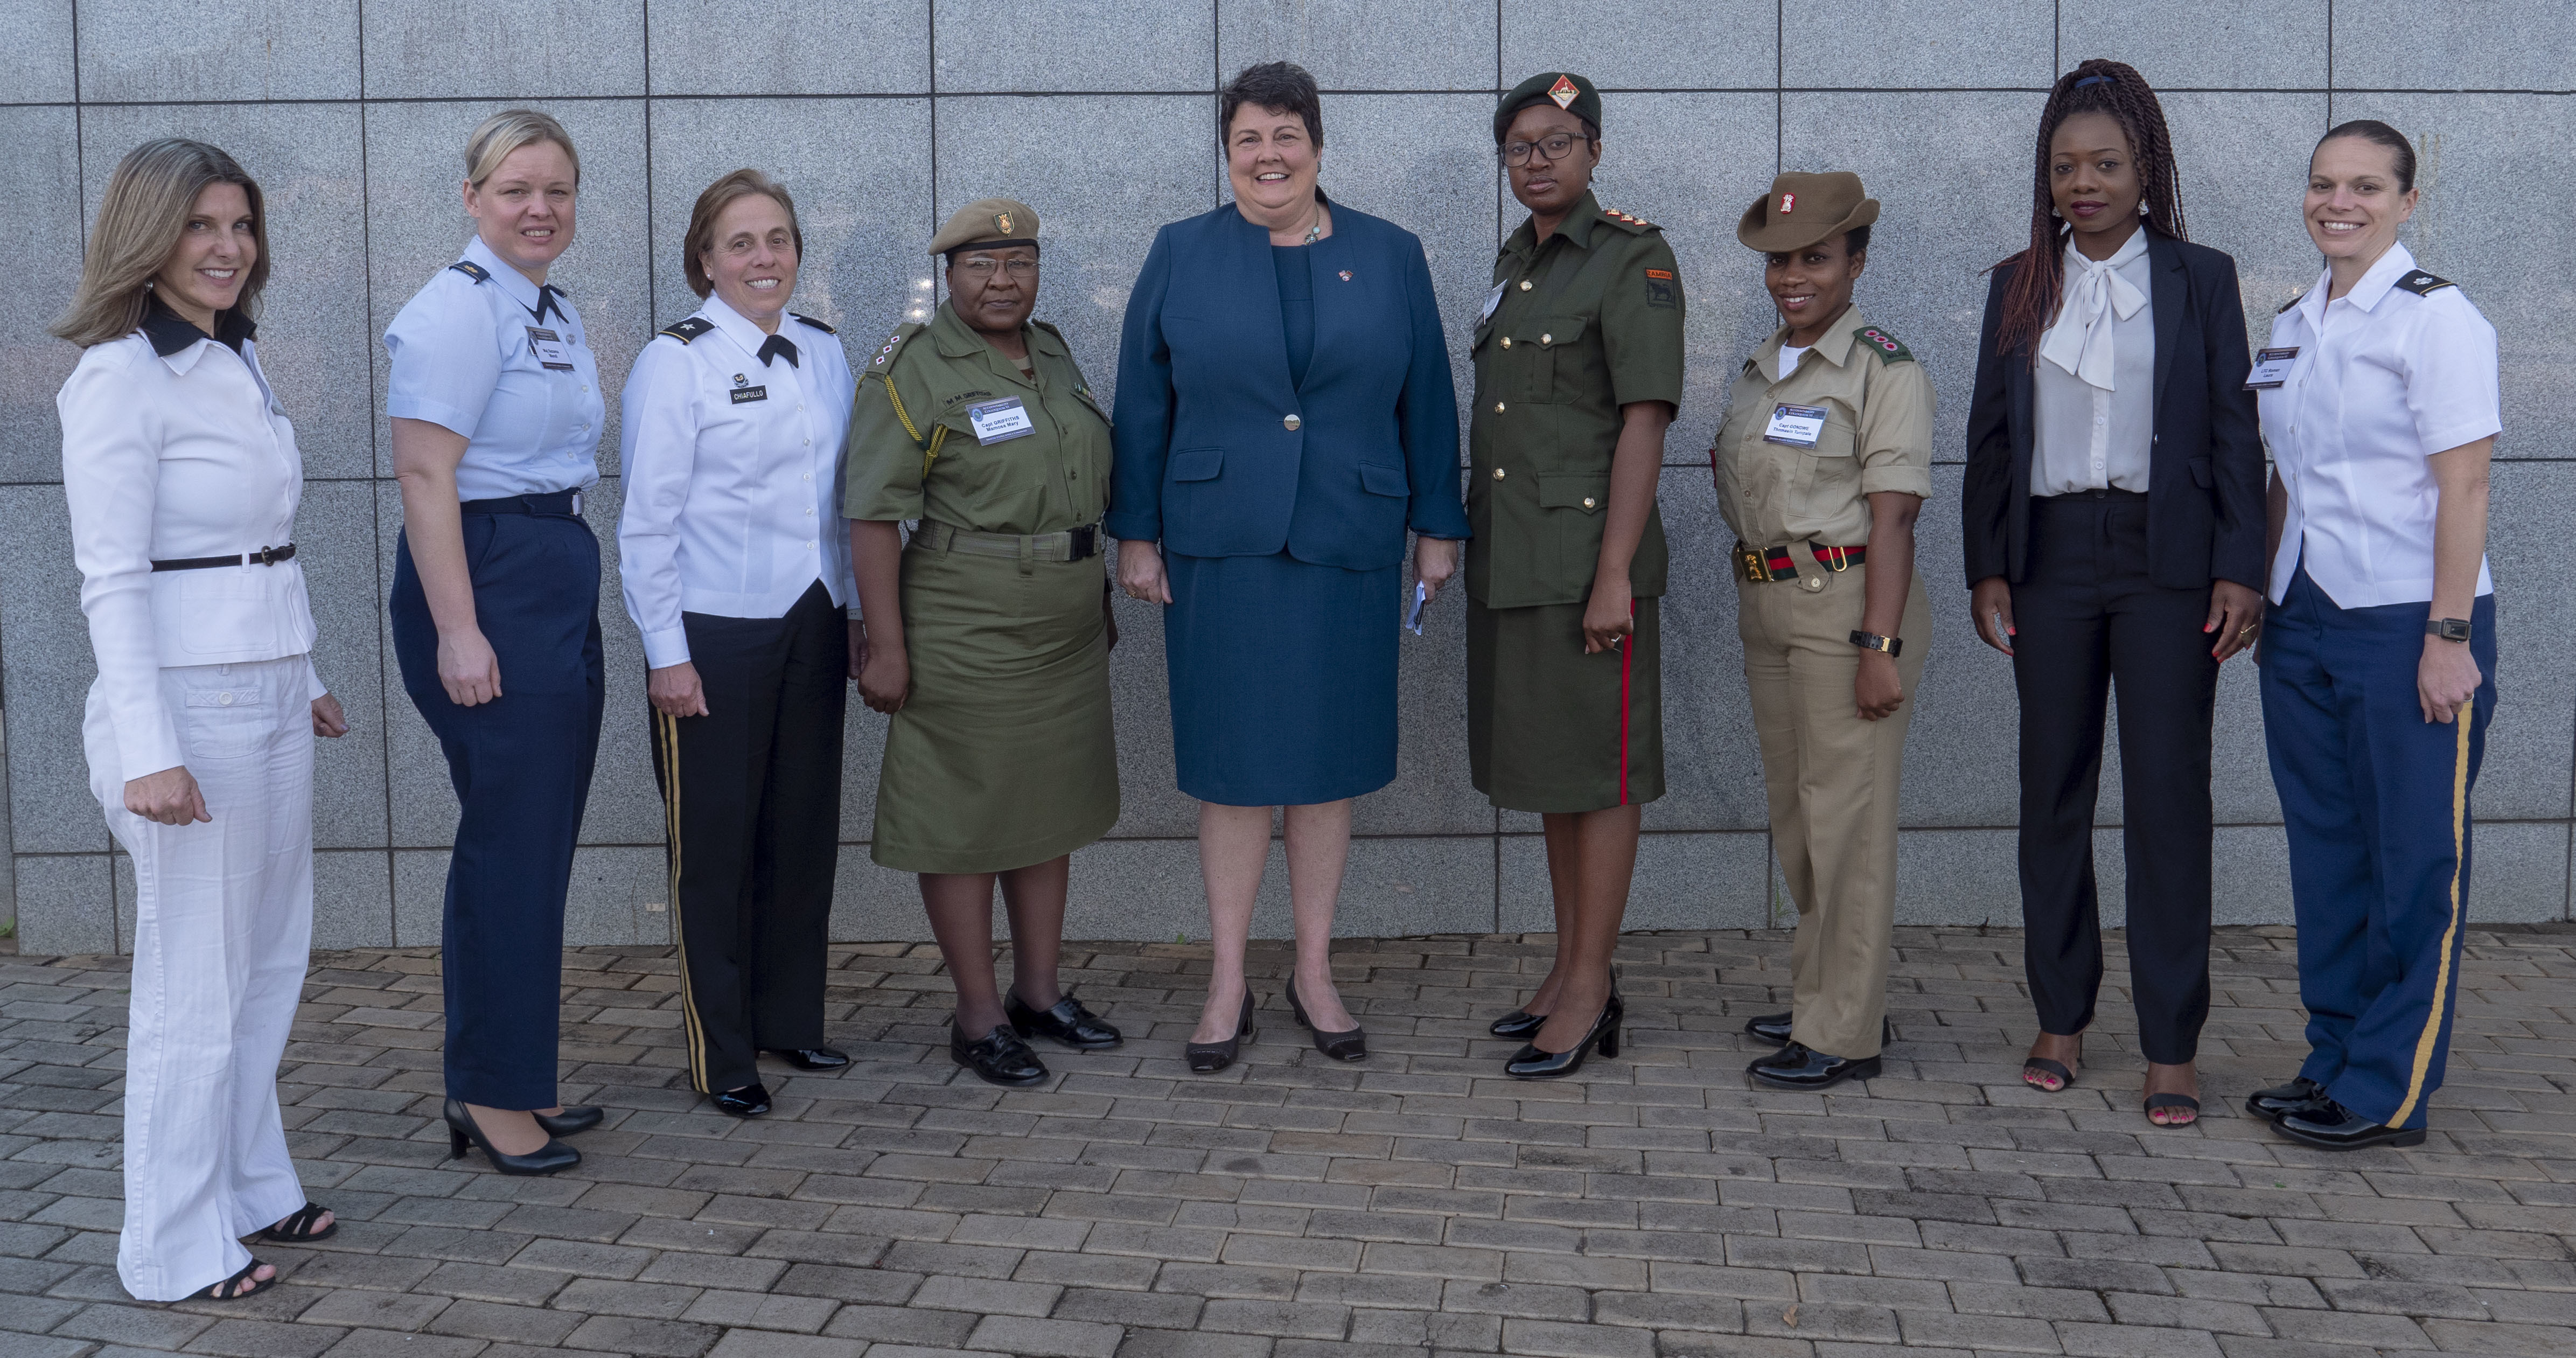 The female delegates to the Accountability Colloquium VI pose with U.S. Ambassador to the Republic of Malawi Virginia Palmer in Lilongwe, Malawi, February 26, 2019. While militaries around the world are still heavily male-dominated, women have made large strides in breaking gender-based barriers in recent years. From left: Sandra Franzblau, Attorney Advisor with United States Africa Command's Office of Legal Counsel; Major Wendi Sazama, United States of America; Brigadier General Mary Chaifullo; Captain Momosa Mary Griffiths; Ambassador Virginia Palmer; Lieutenant Beene Mudenda Mutinda; Captain Thomasin Tumpale Gondwe; Mtendere Gondwe, Representative from the African Union; Lieutenant Colonel Laura Roman.